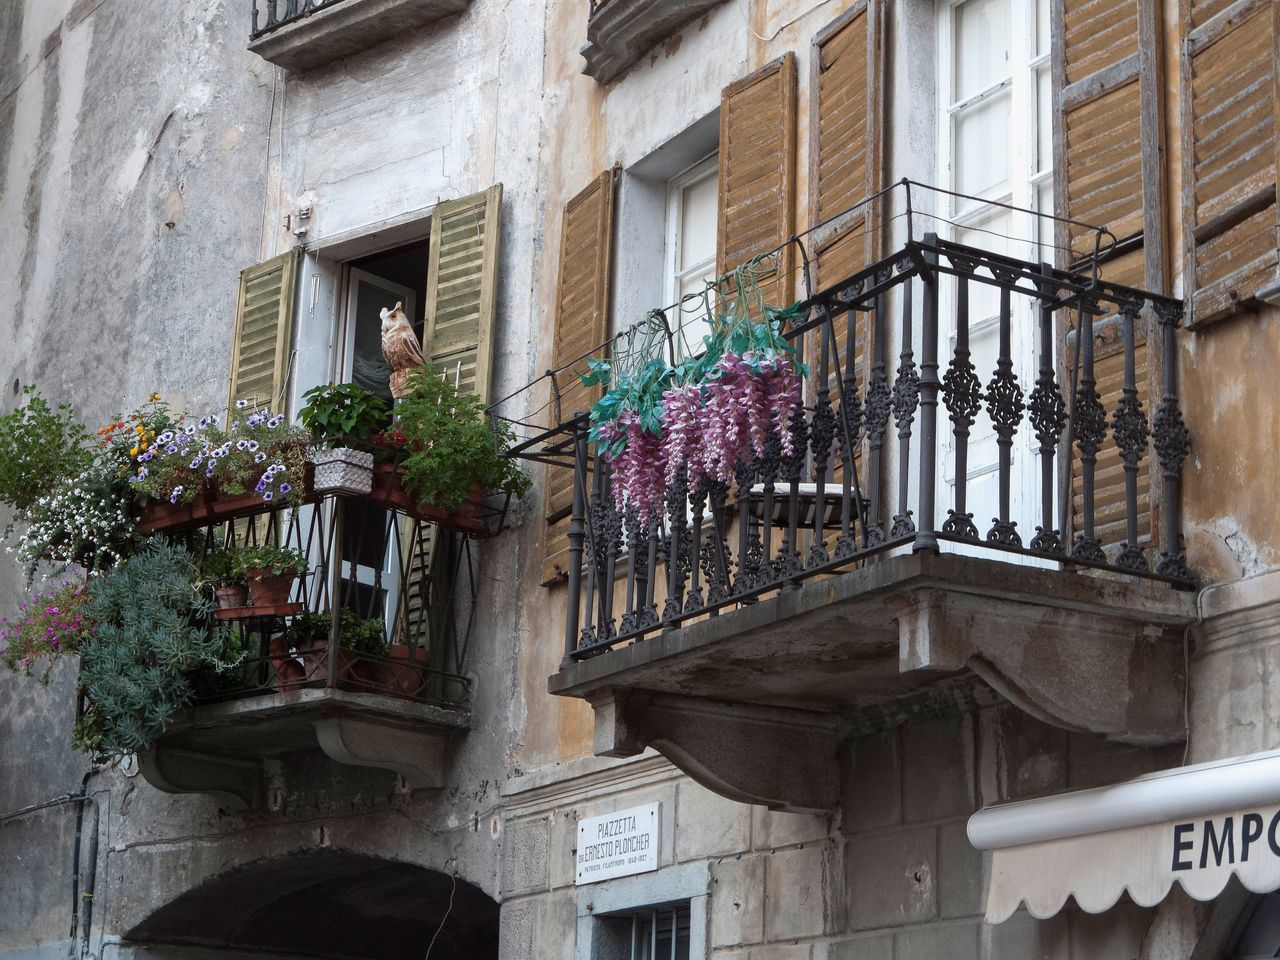 Architecture Balconies Balcony Balkony Building Exterior Built Structure Day Flower House No People Outdoors Residential Building Window Window Box